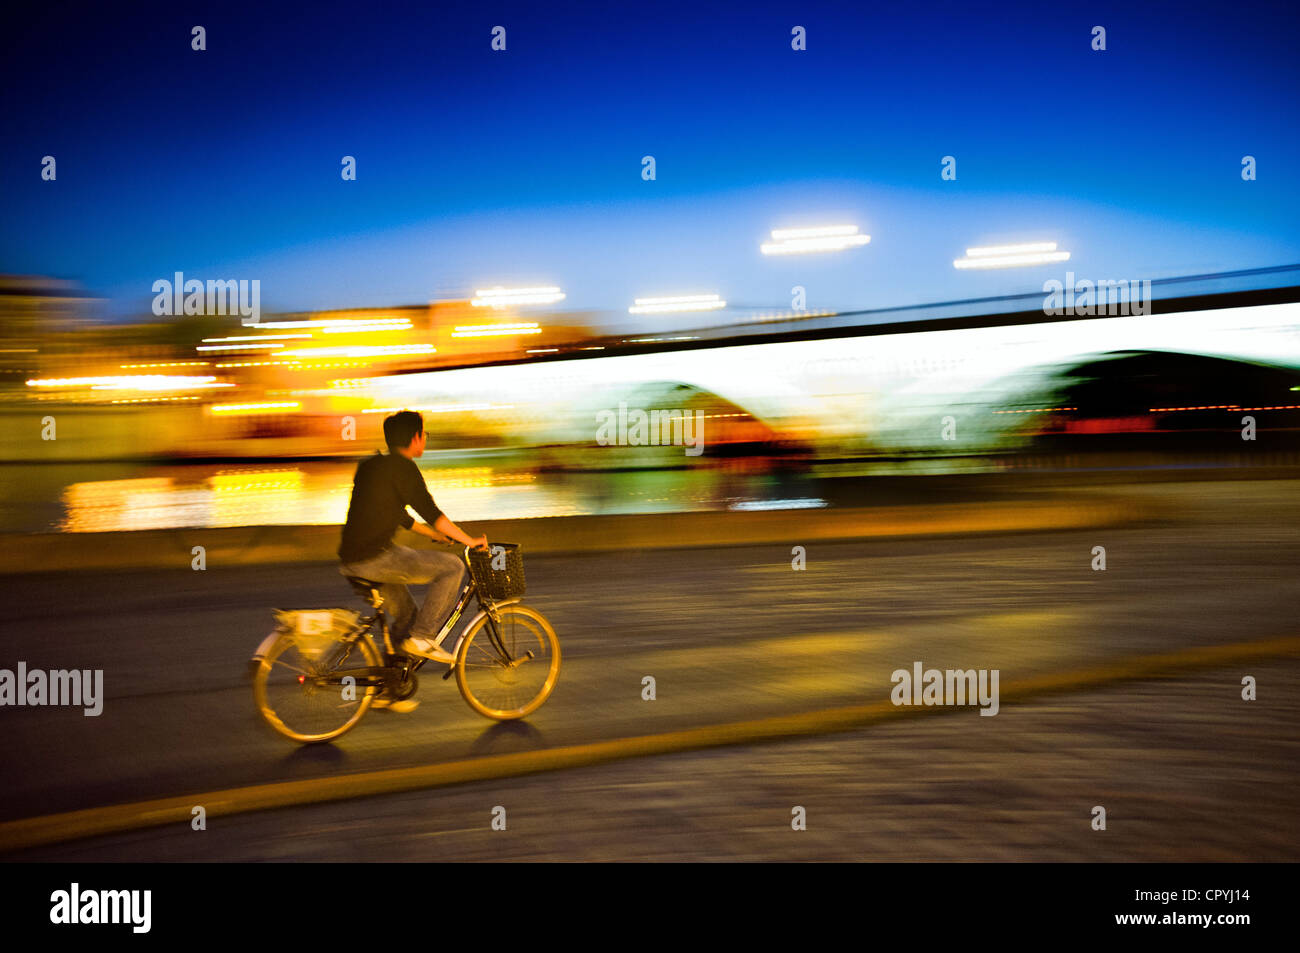 Panning shot of a cyclist by Tirana Bridge, Seville, Spain - Stock Image